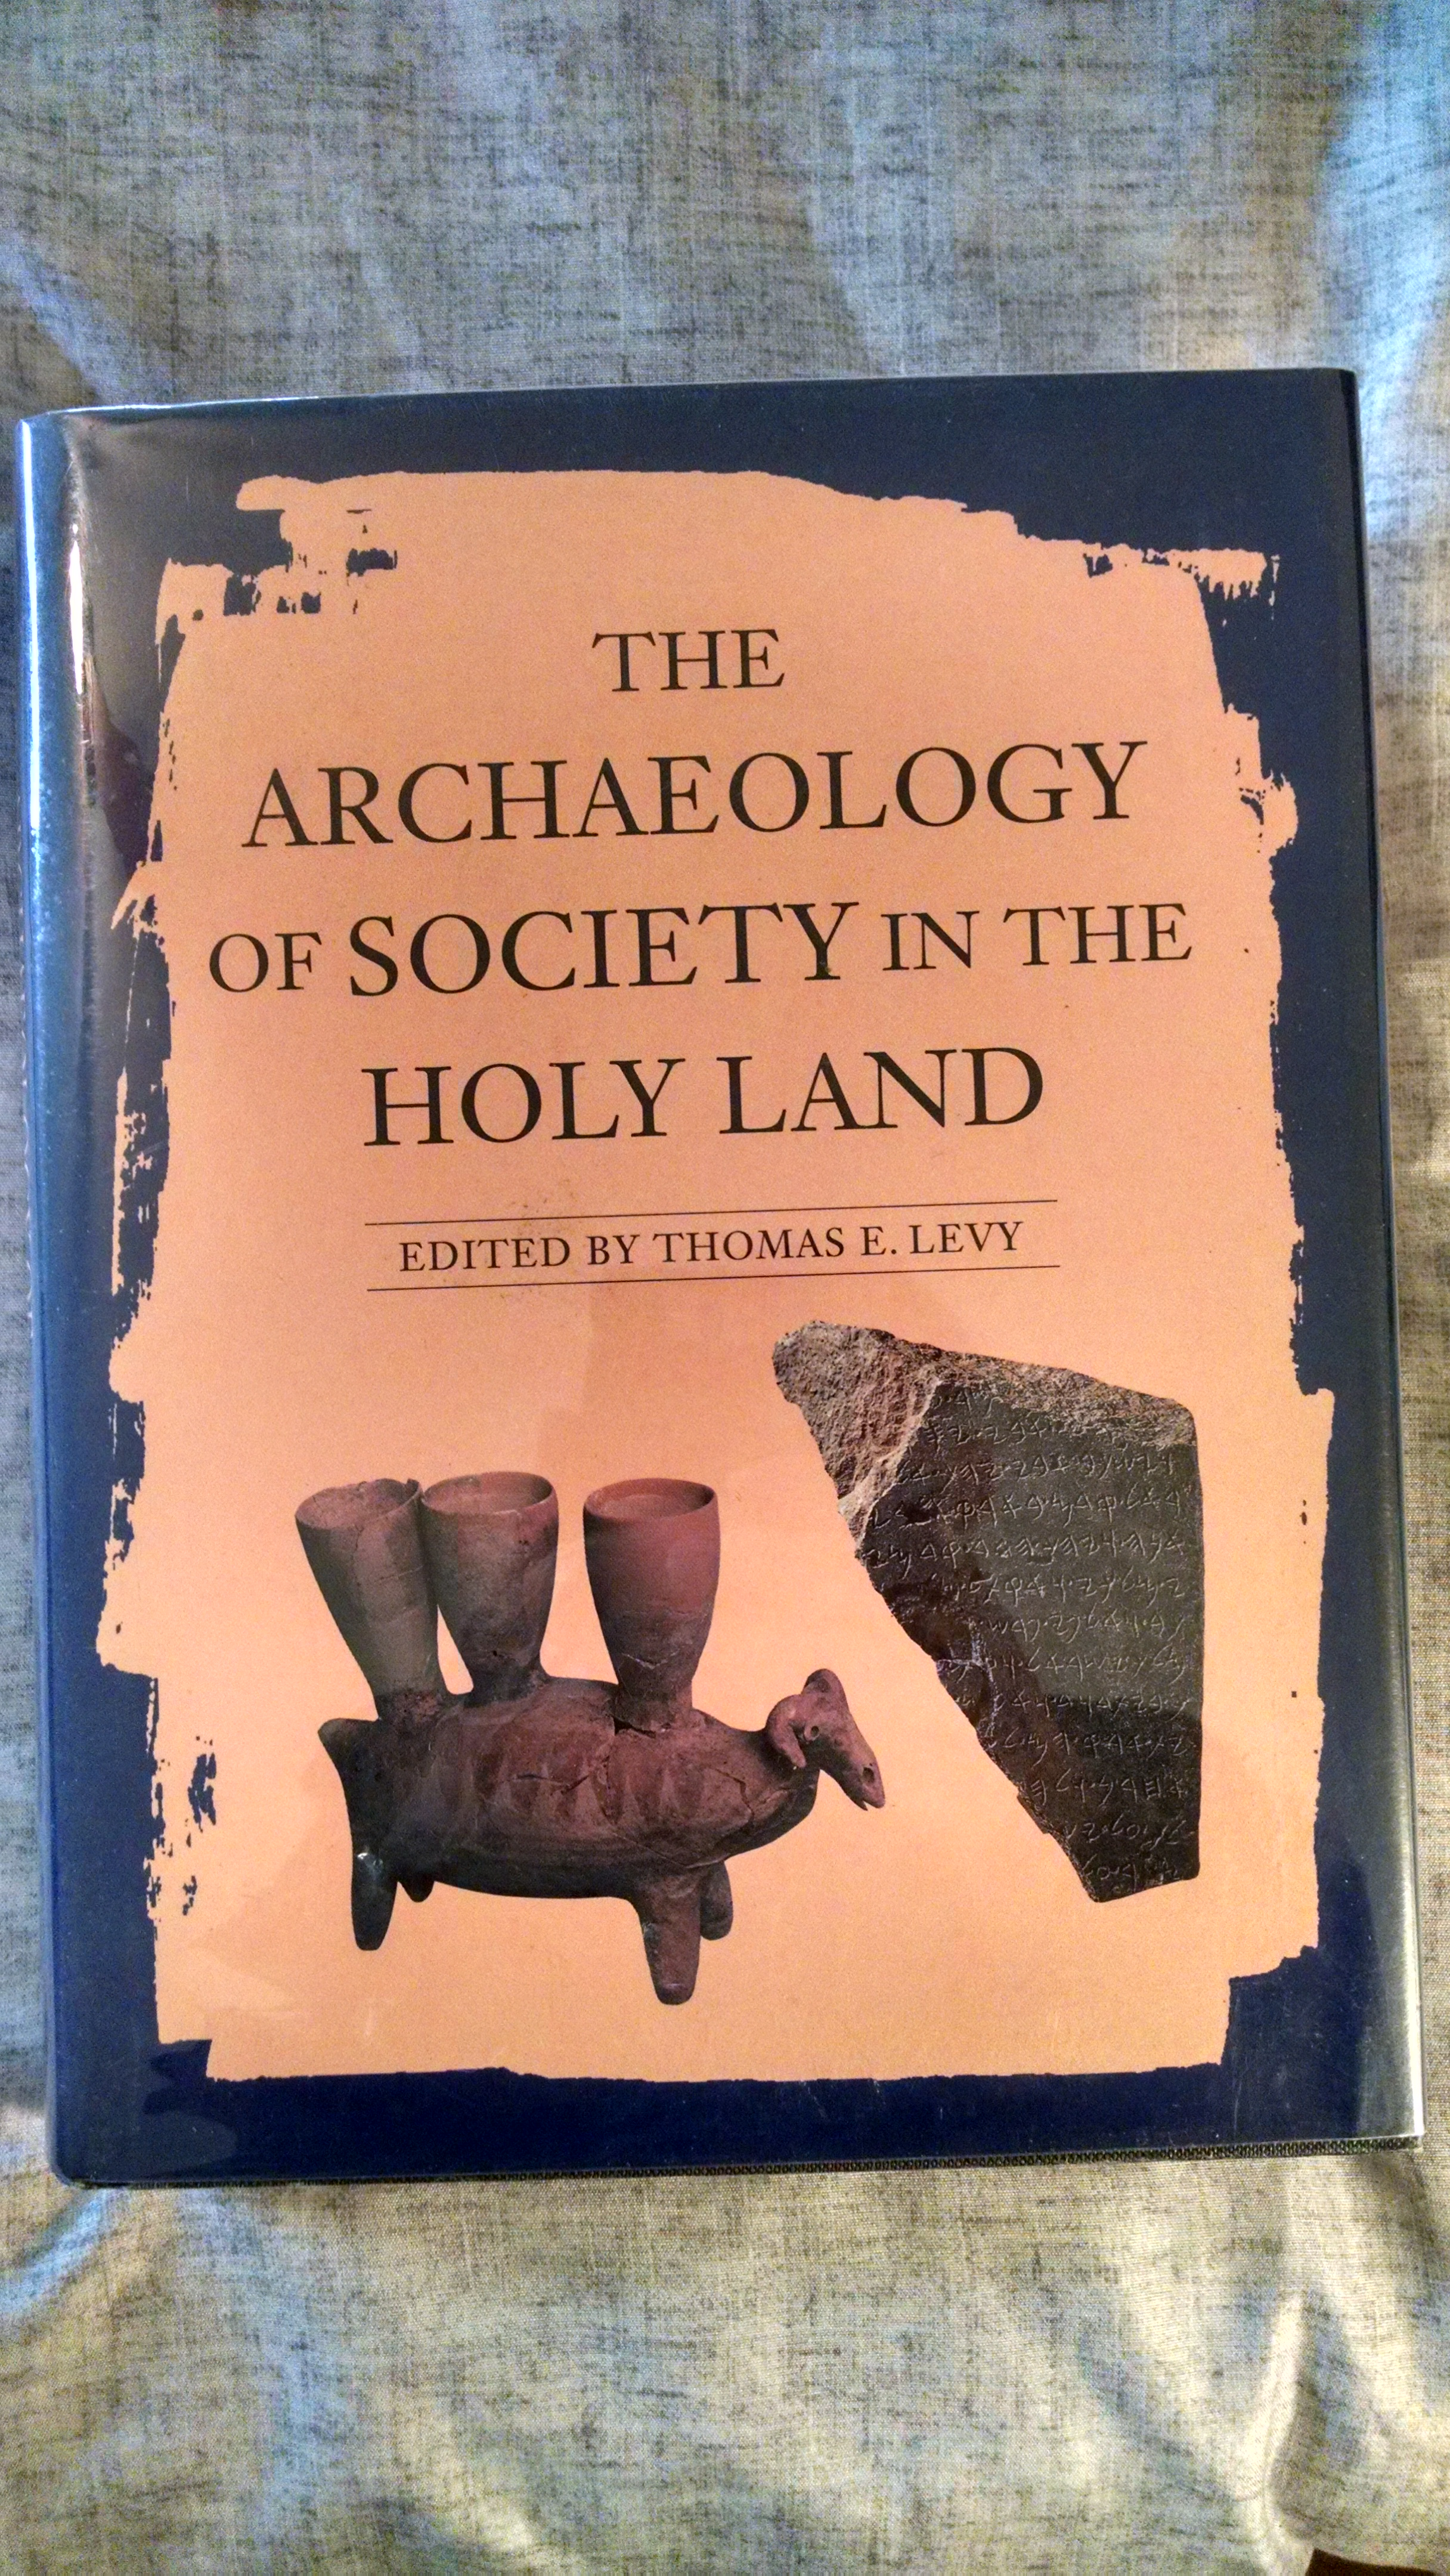 Image for THE ARCHAEOLOGY OF SOCIETY IN THE HOLY LAND